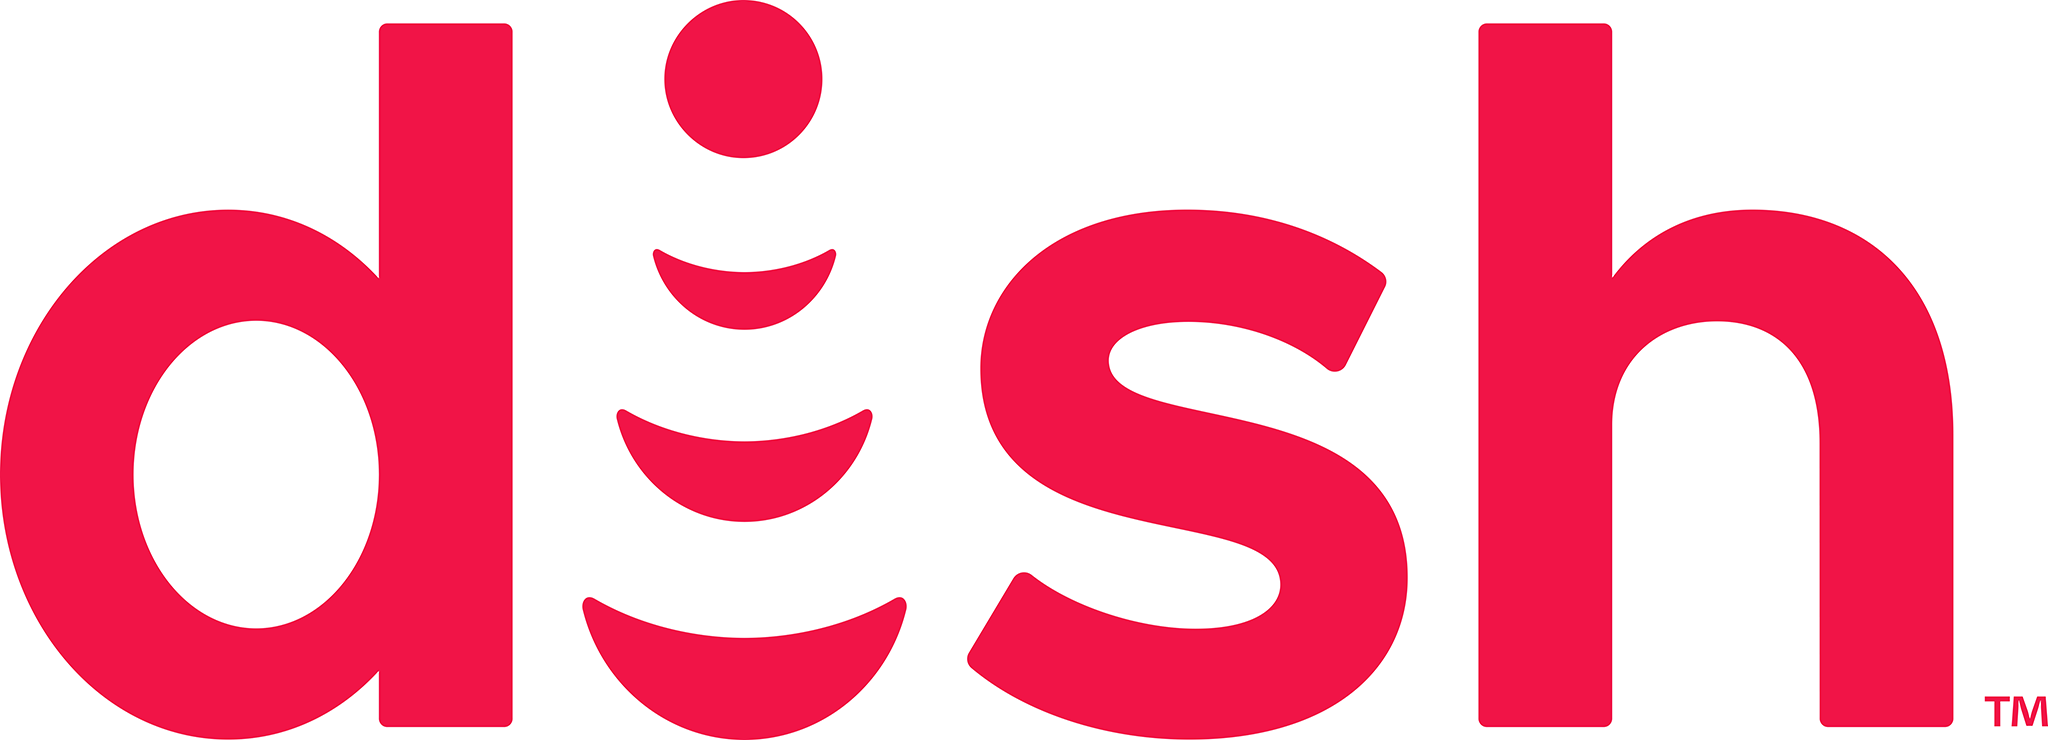 DISH Network - Corporate Communications logo